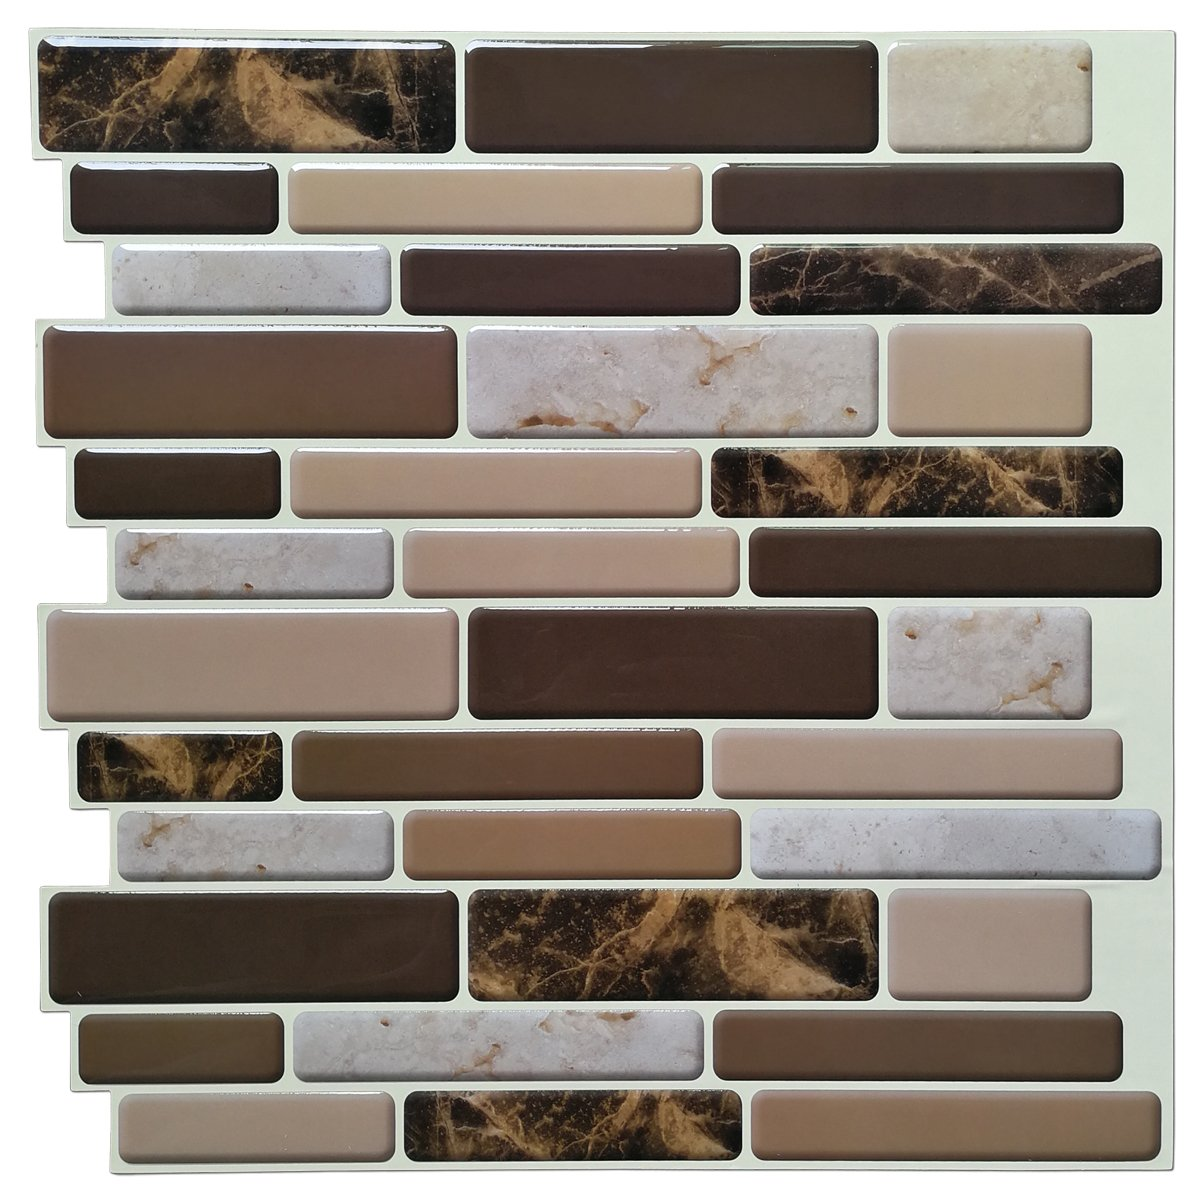 Art3d 12''x12'' Self Adhesive Wall Tile Peel and Stick Backsplash for Kitchen, Marble Design (6 Pack)